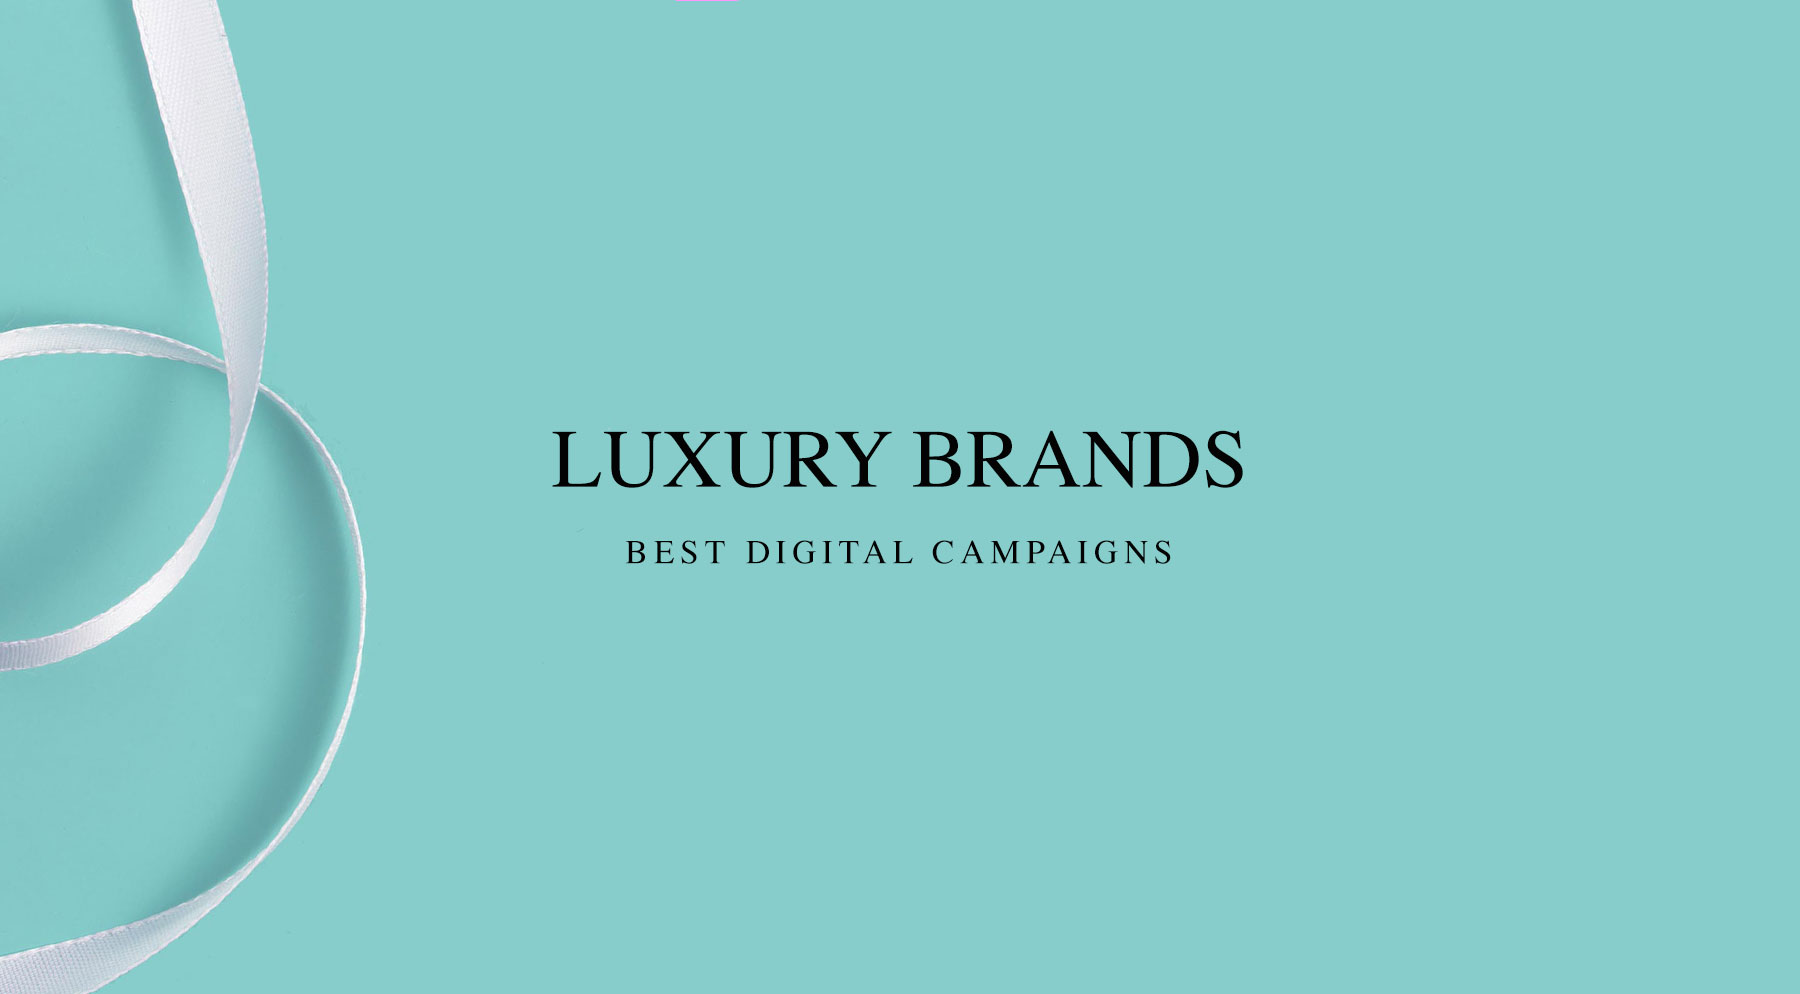 a051ecf43085 Digital Campaigns From The Luxury Industry - Digital Blog - Fifteen